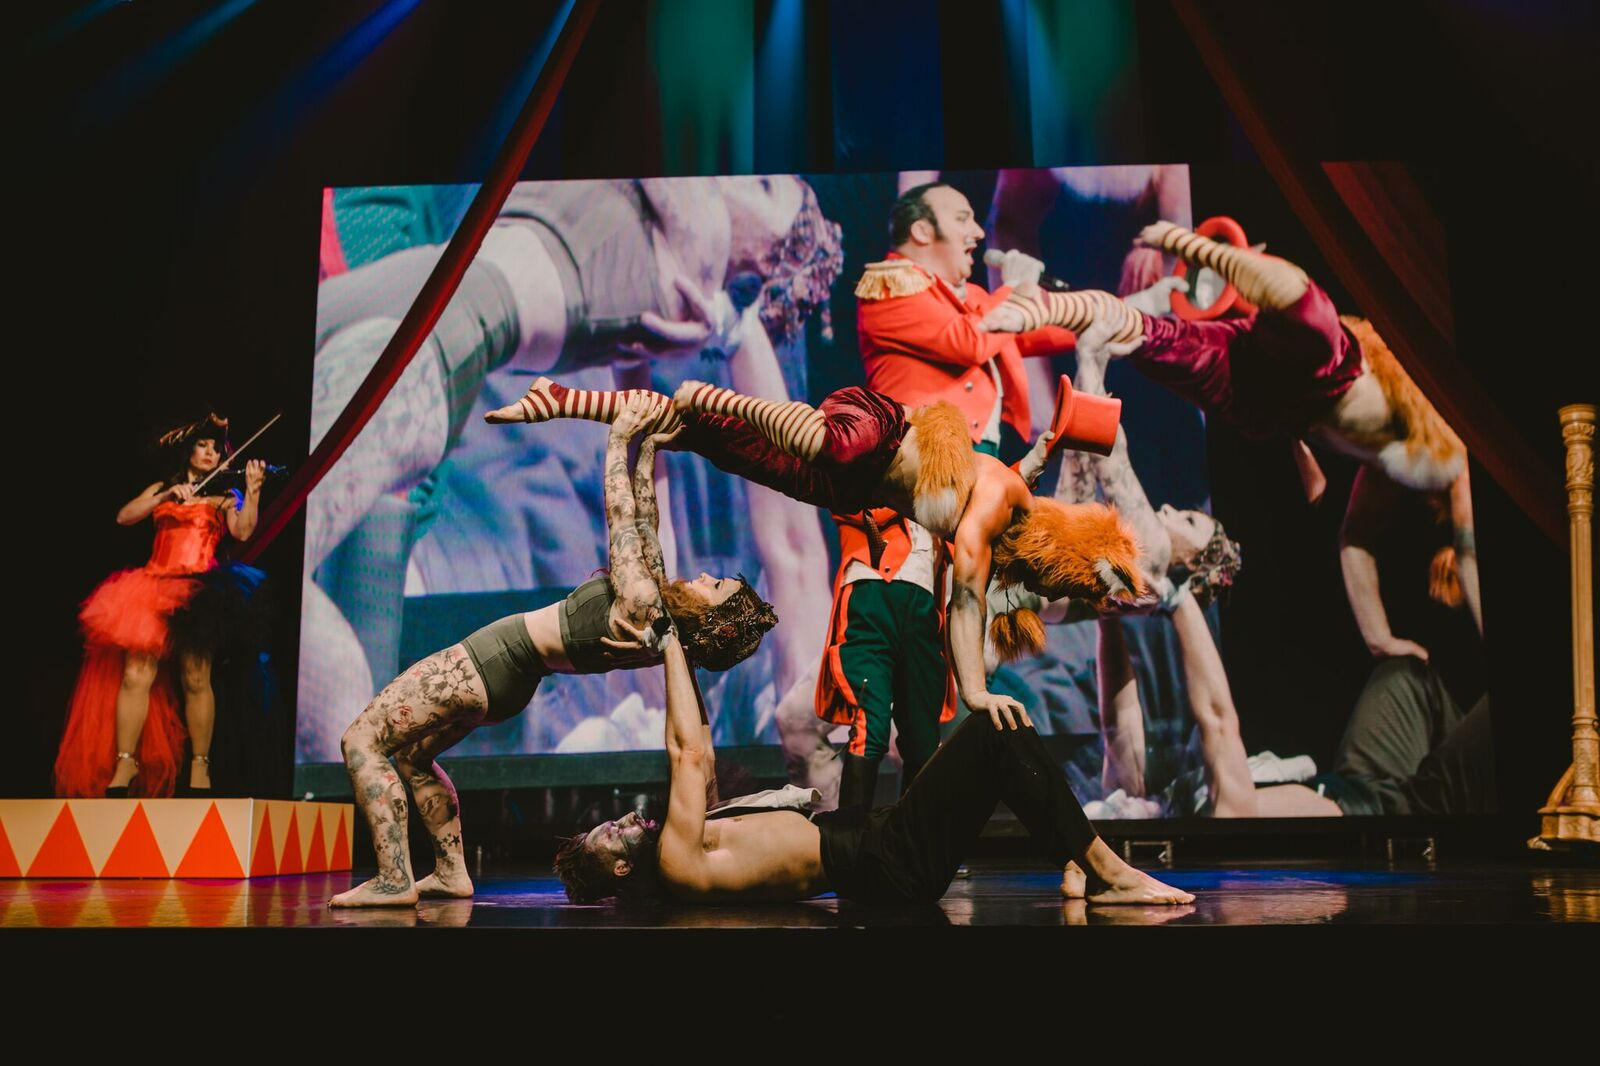 circus act performance acrboat dance stilts